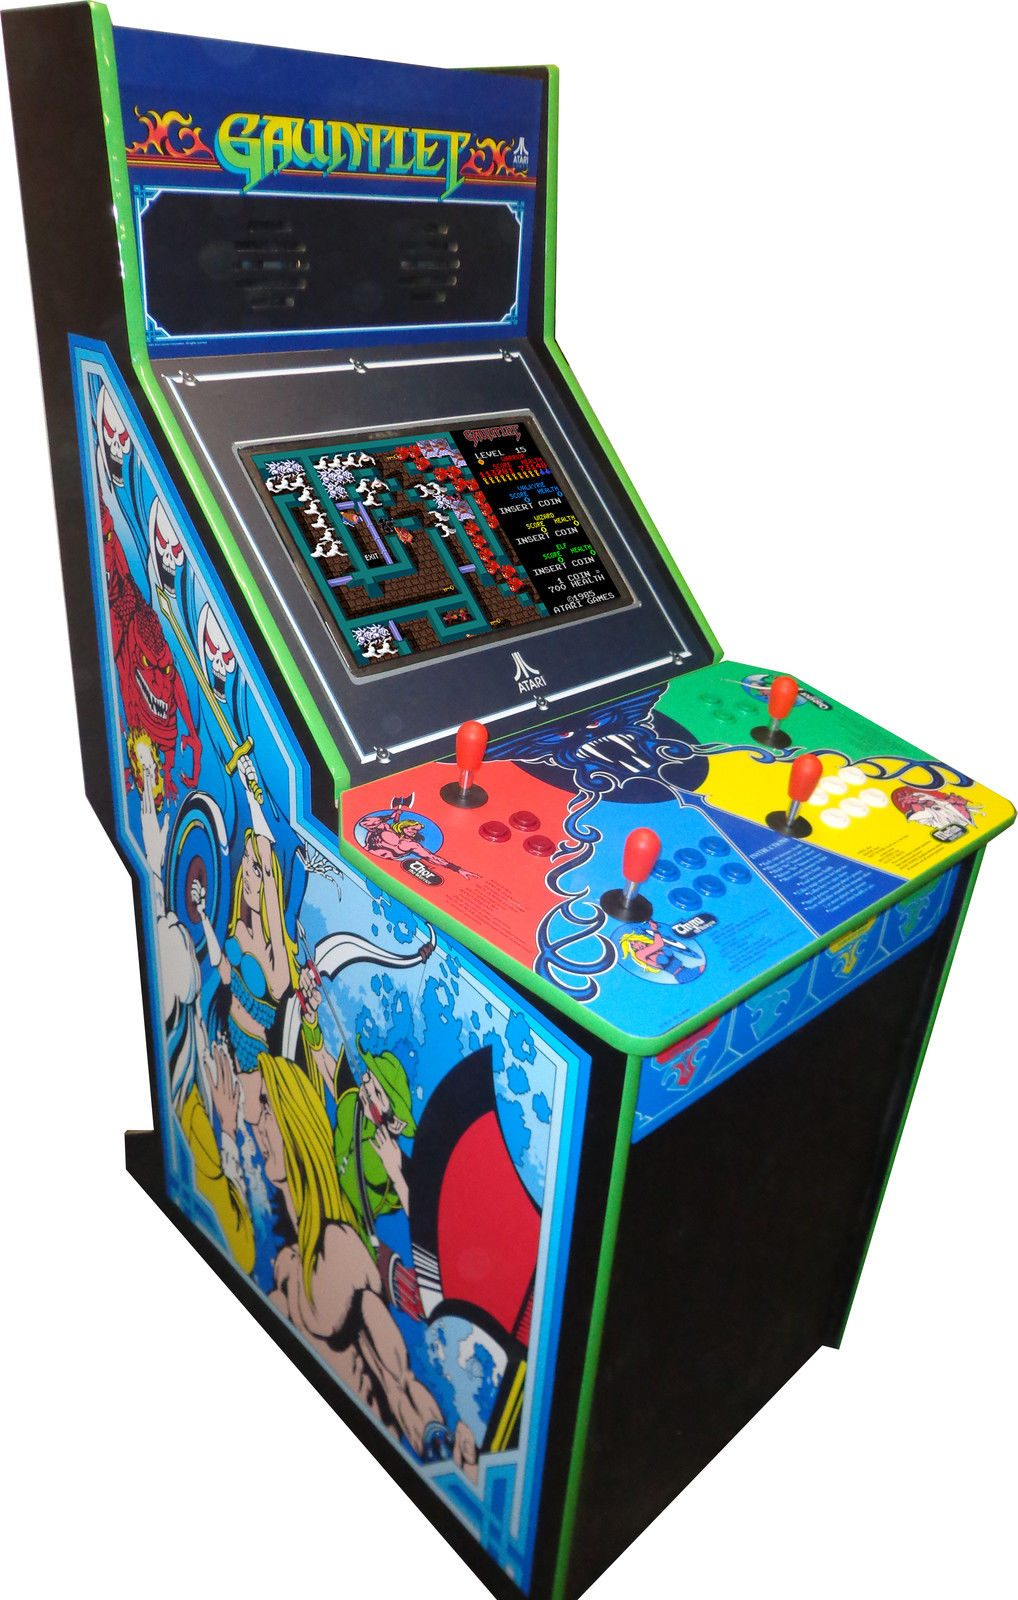 Arcade Cabinets For Sale